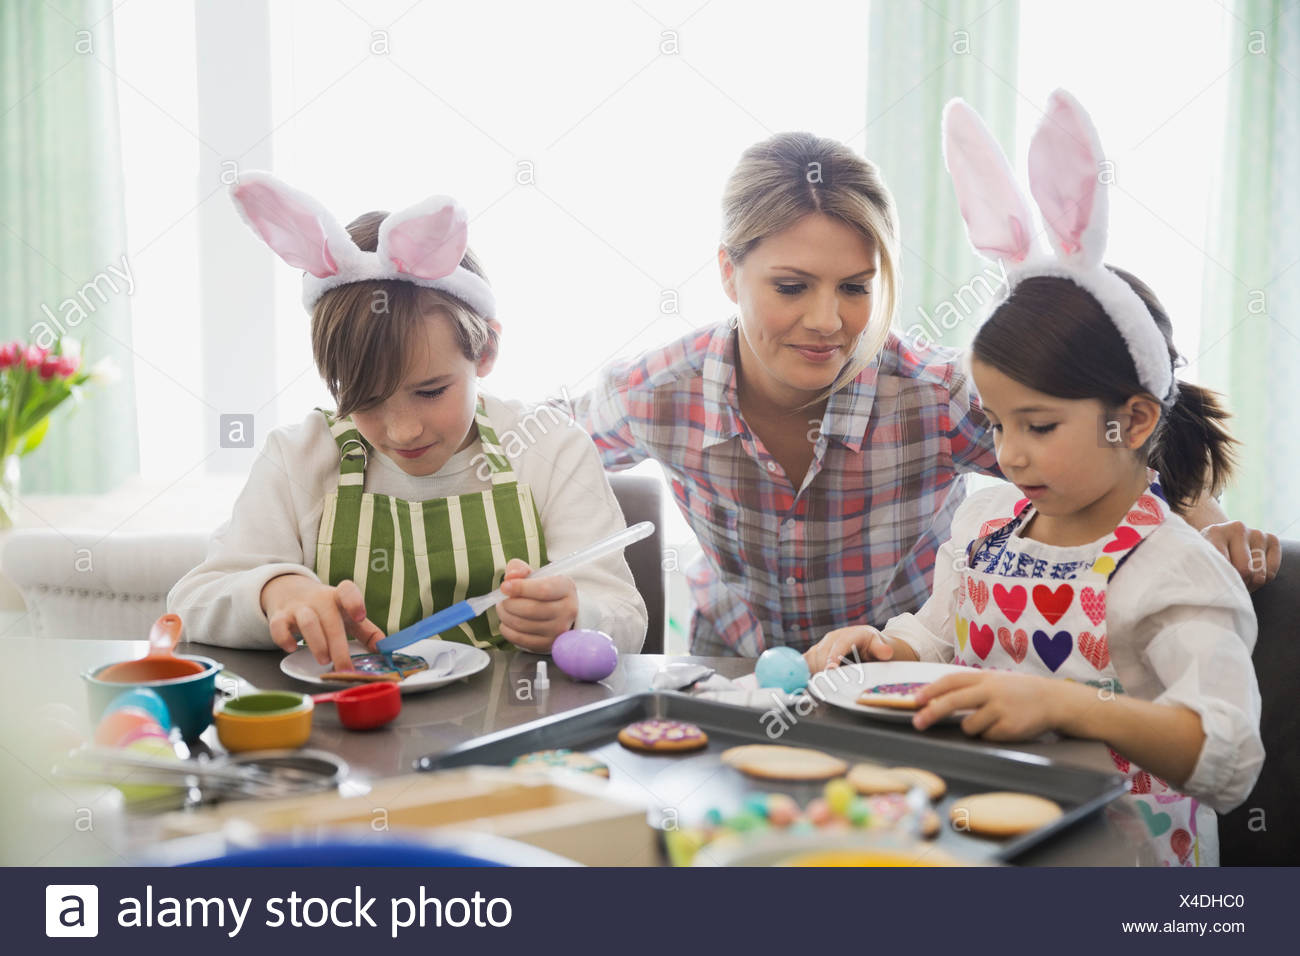 Mother with children decorating Easter cookies - Stock Image